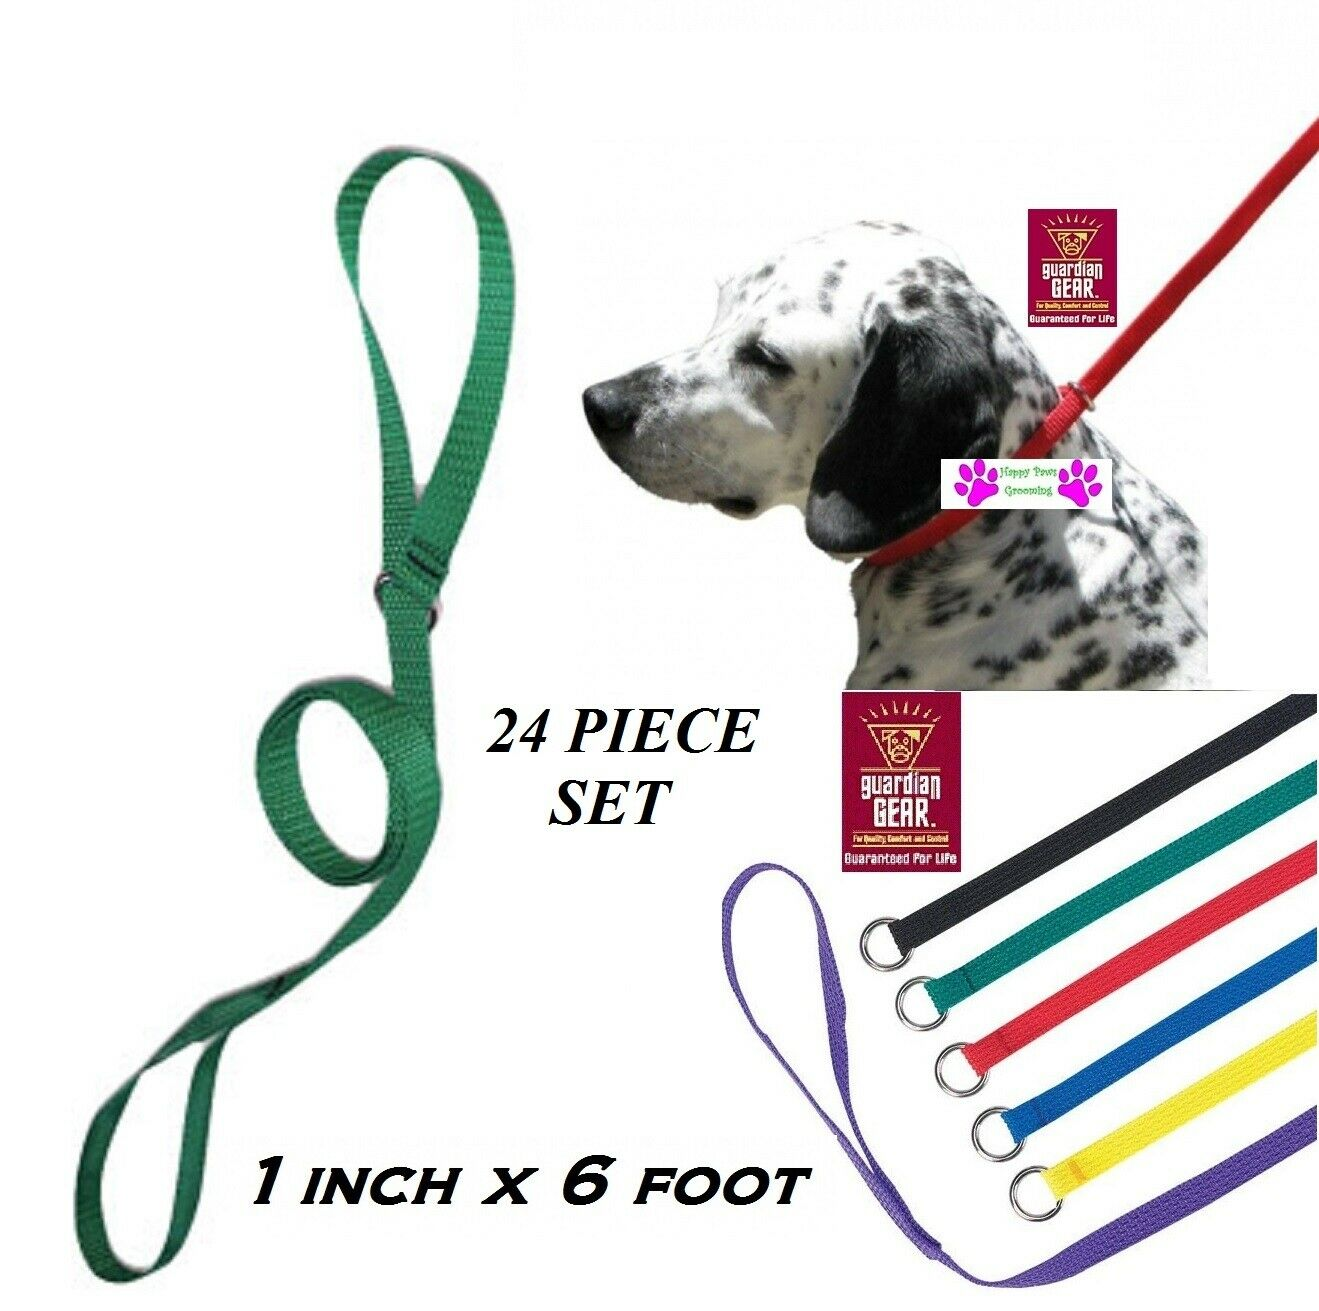 24pc Pet No SLIP KENNEL 1 in x 6 ft LEAD QuickFit Nylon LEASH ANIMAL DOG CONTROL